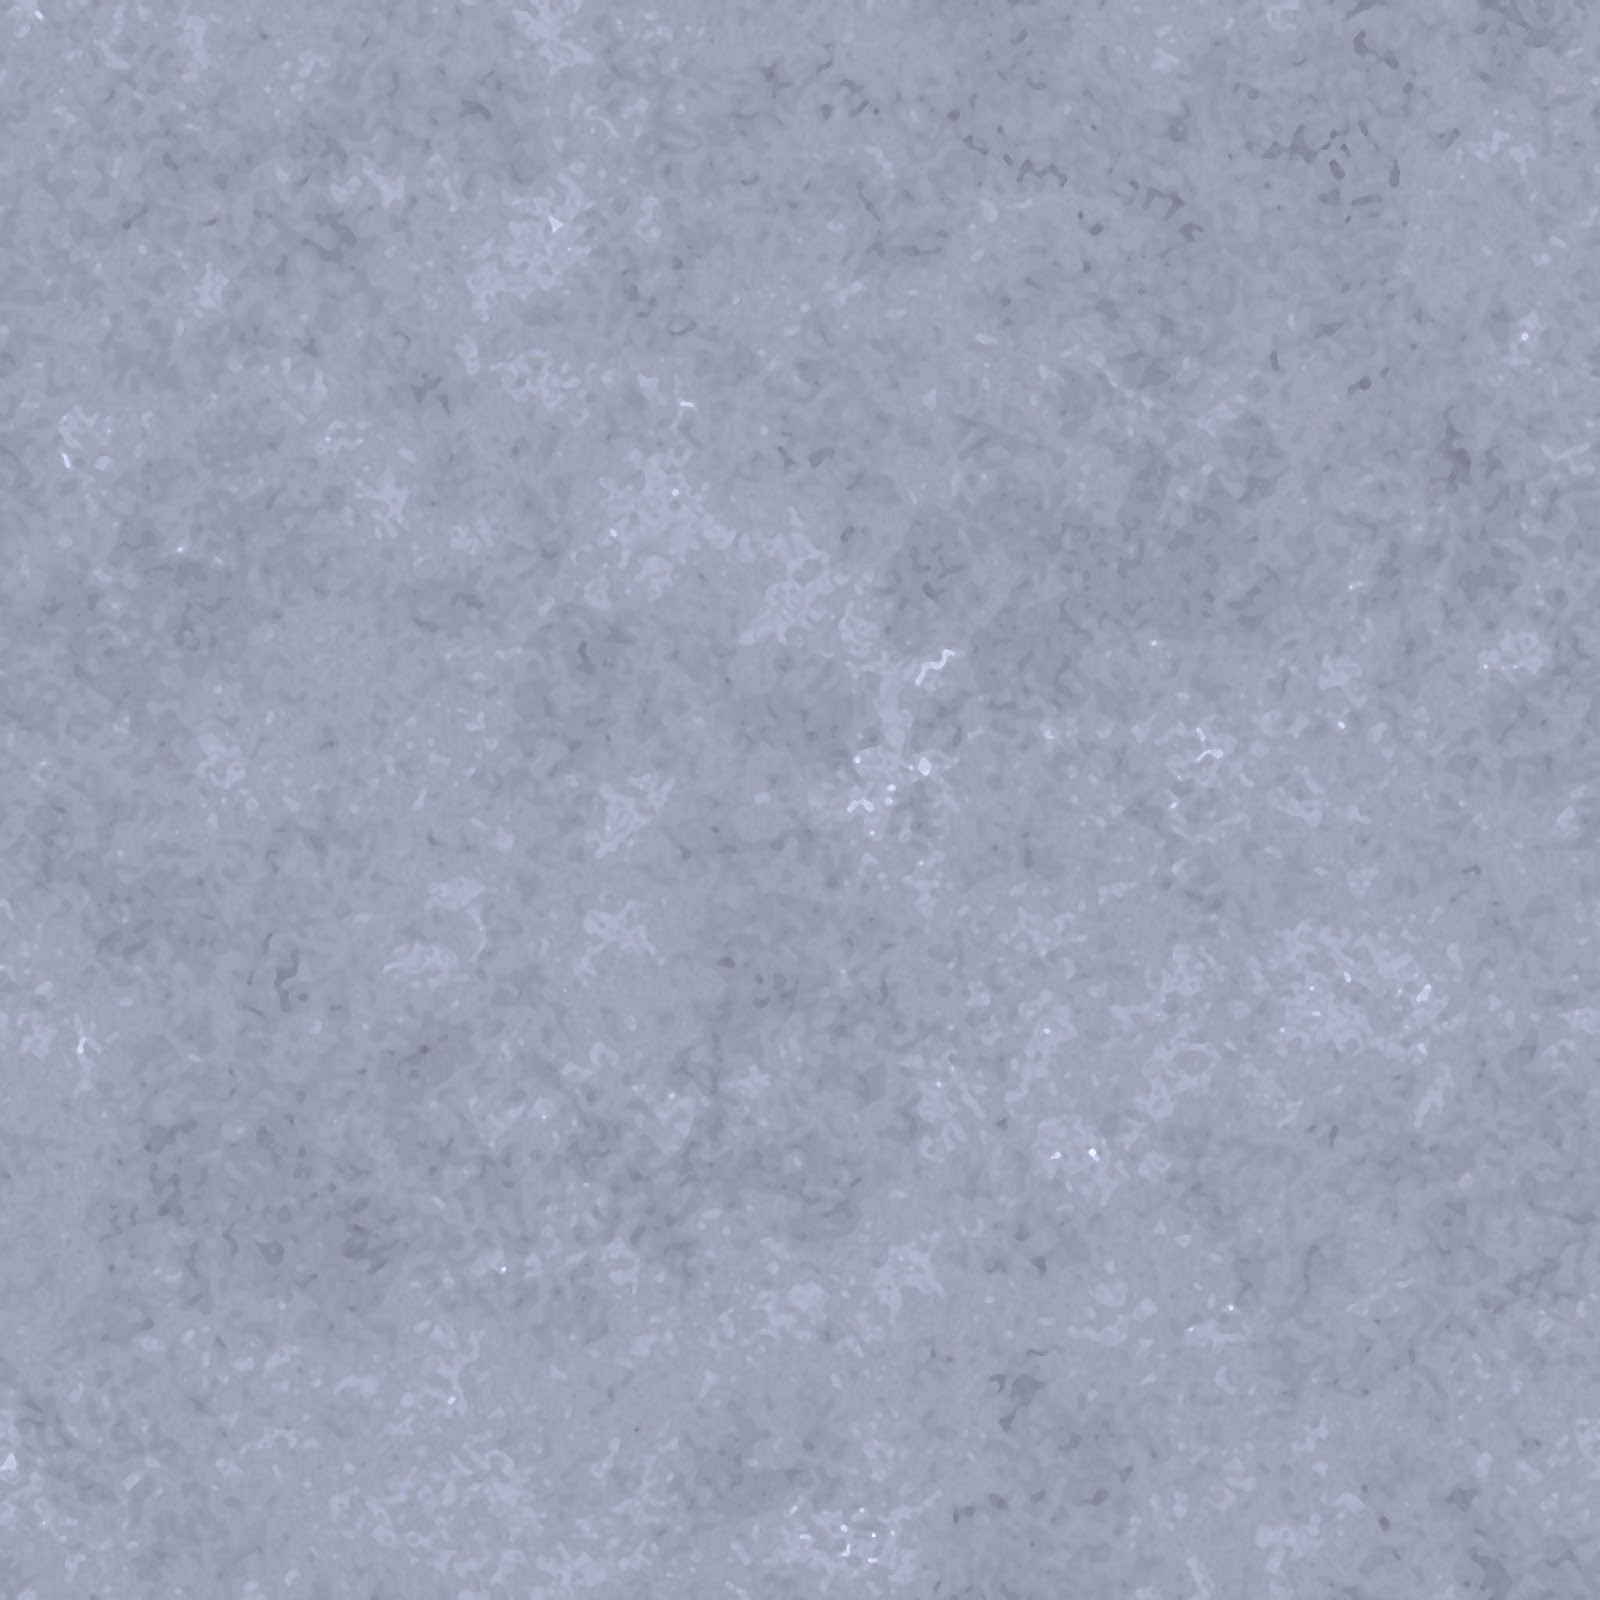 Smooth_metal_plate_texture_seamless_tileable